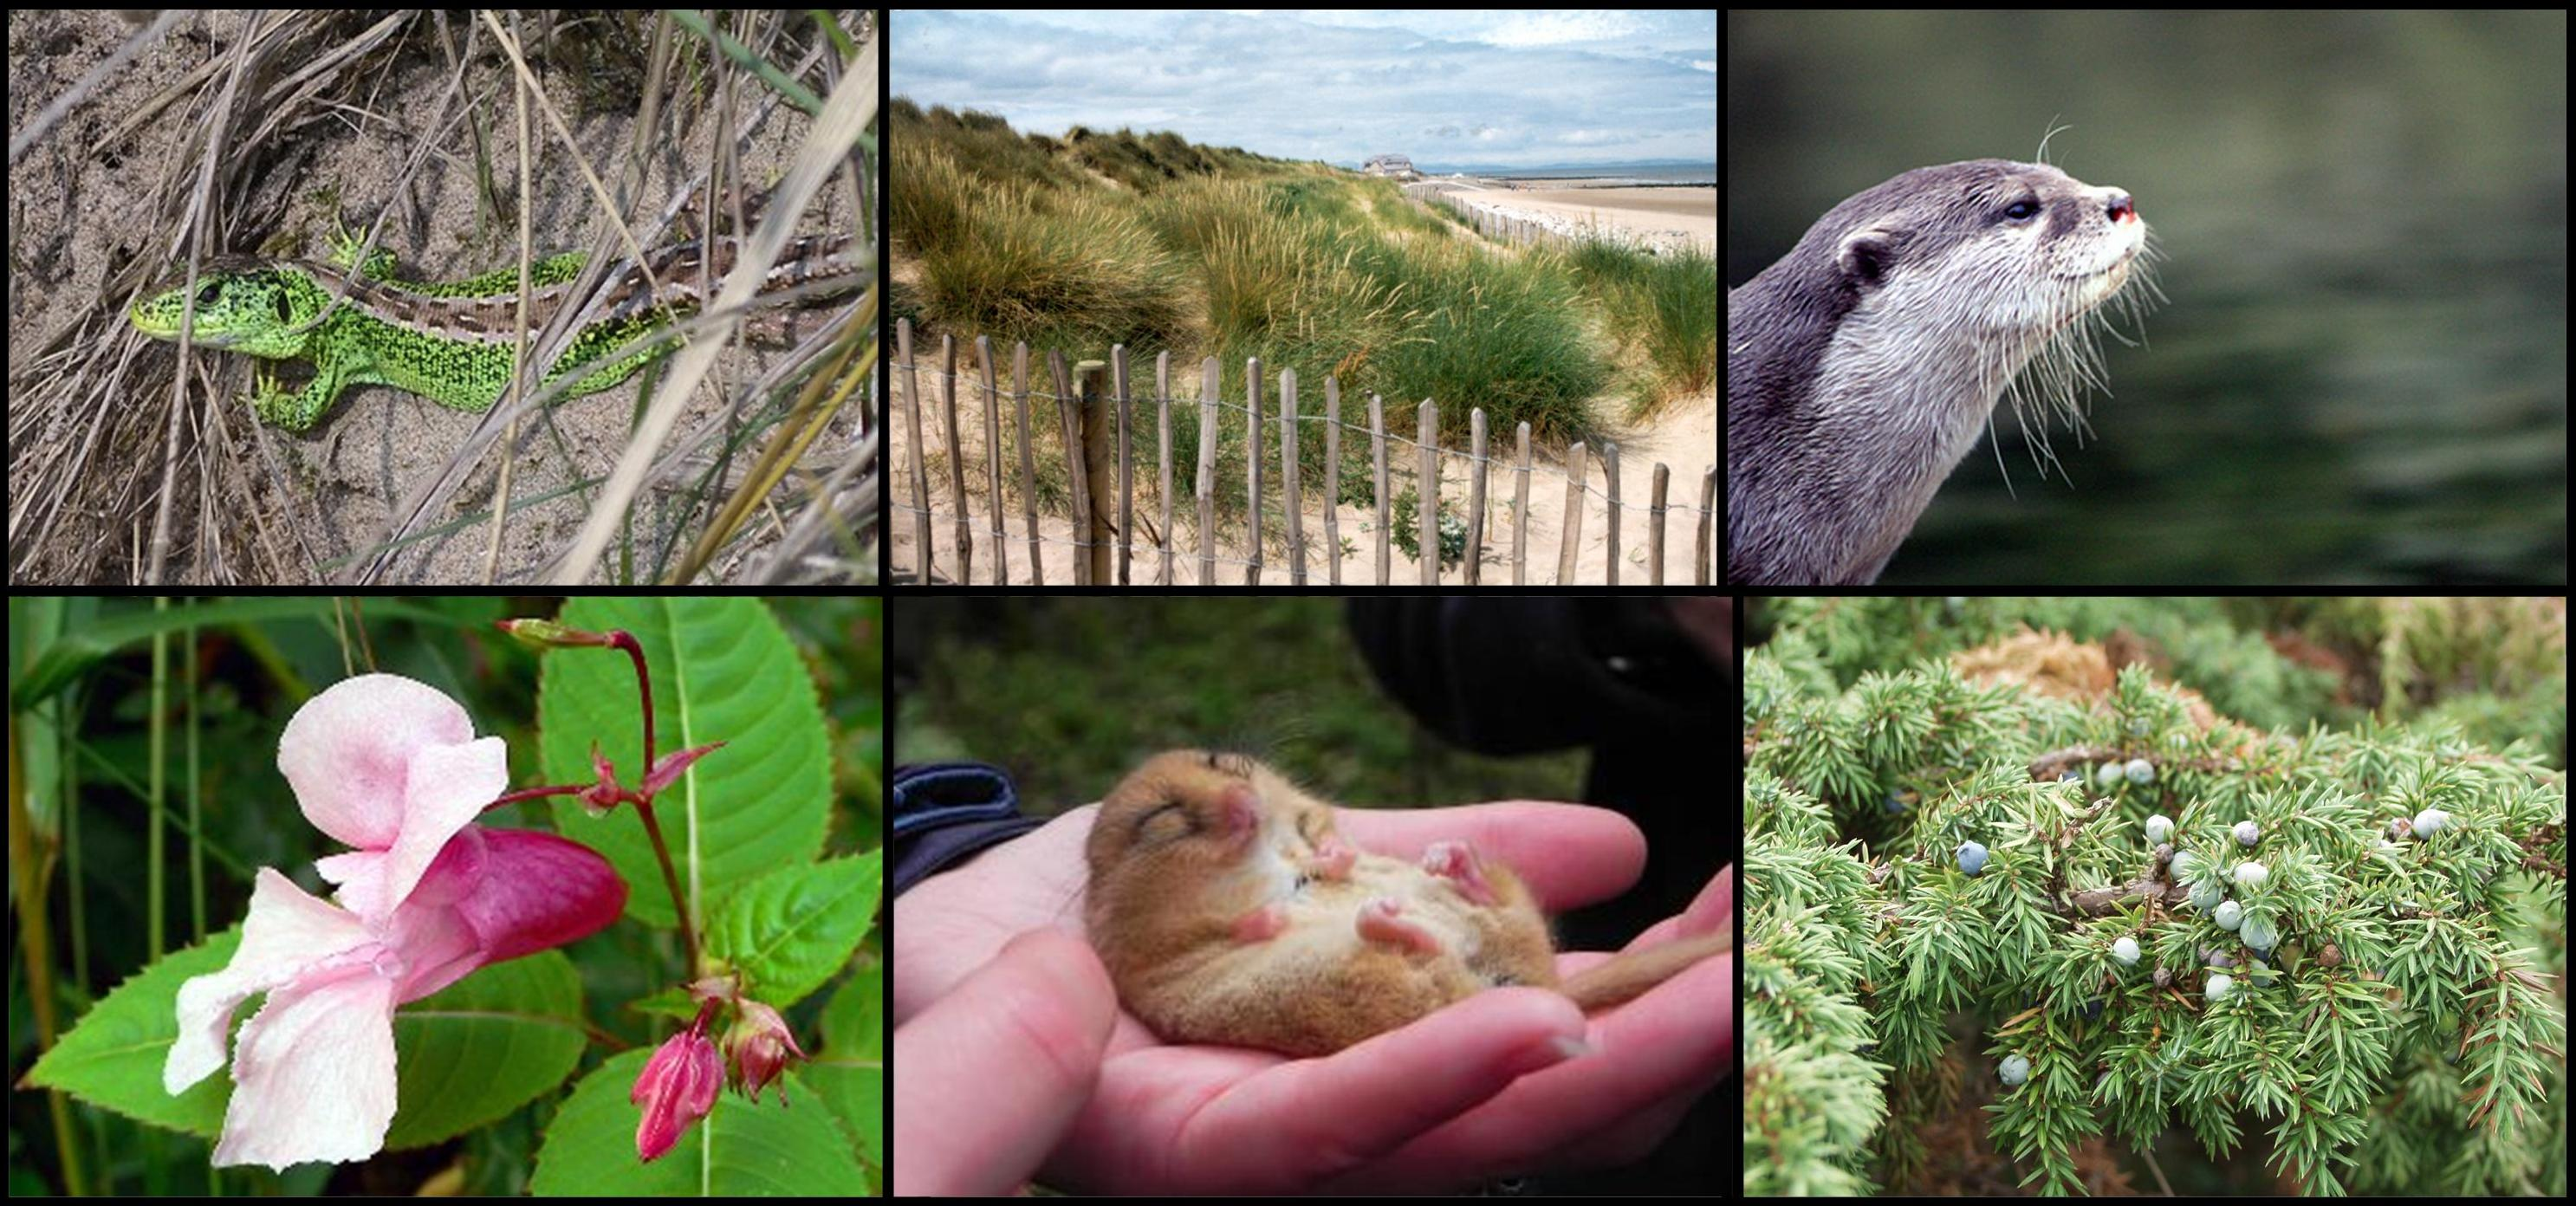 Clockwise from top left: sand lizard (Mick Brummage), Gronant dunes, otter, juniper (Sarah Bird), dormouse (Angela Smith), Himalayan balsam